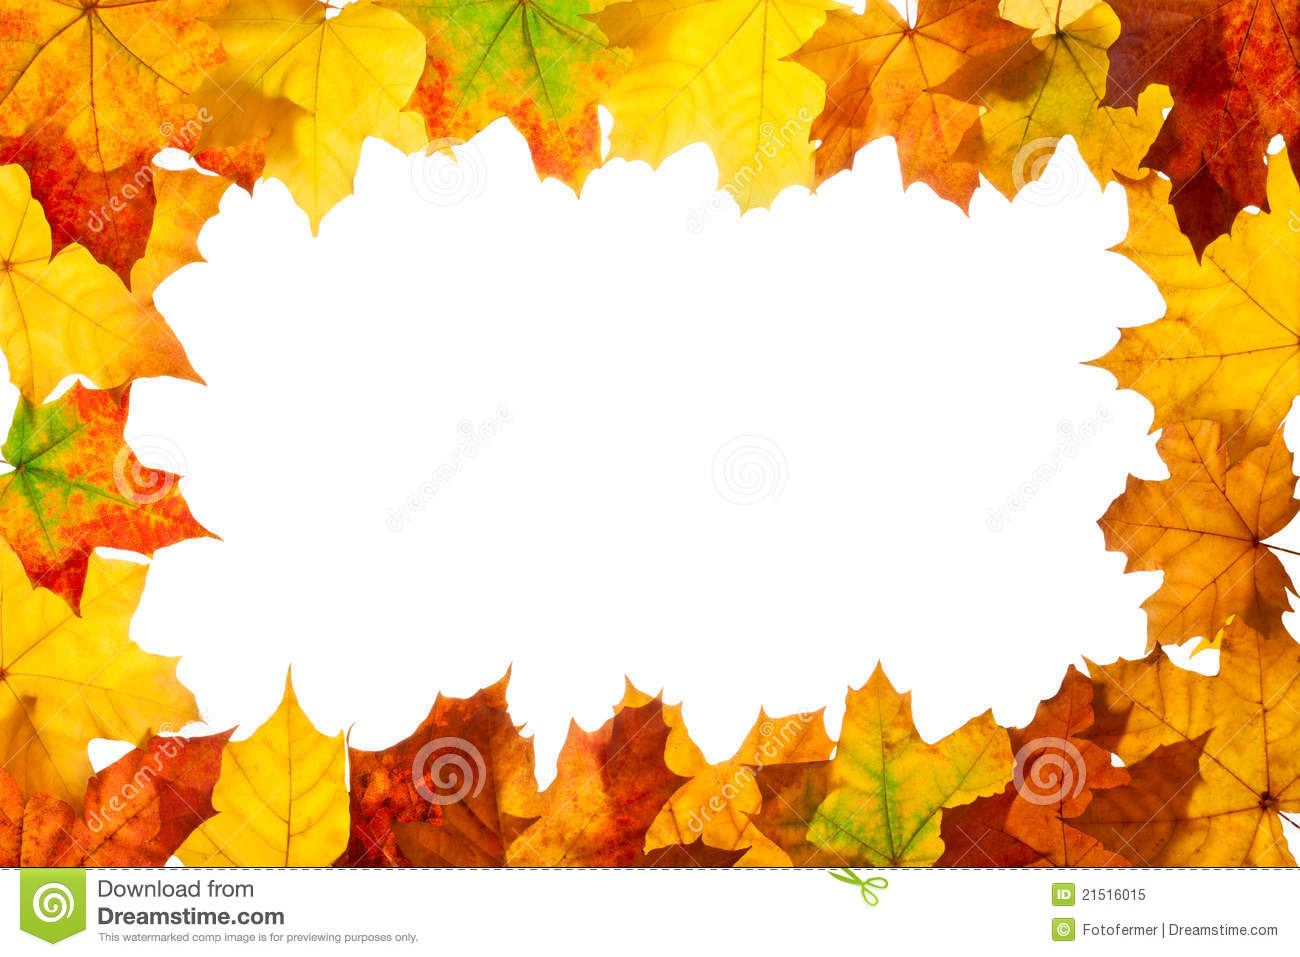 Wallpaper Leaves Falling Frame Of Maple Autumn Leaves Stock Image Image 21516015